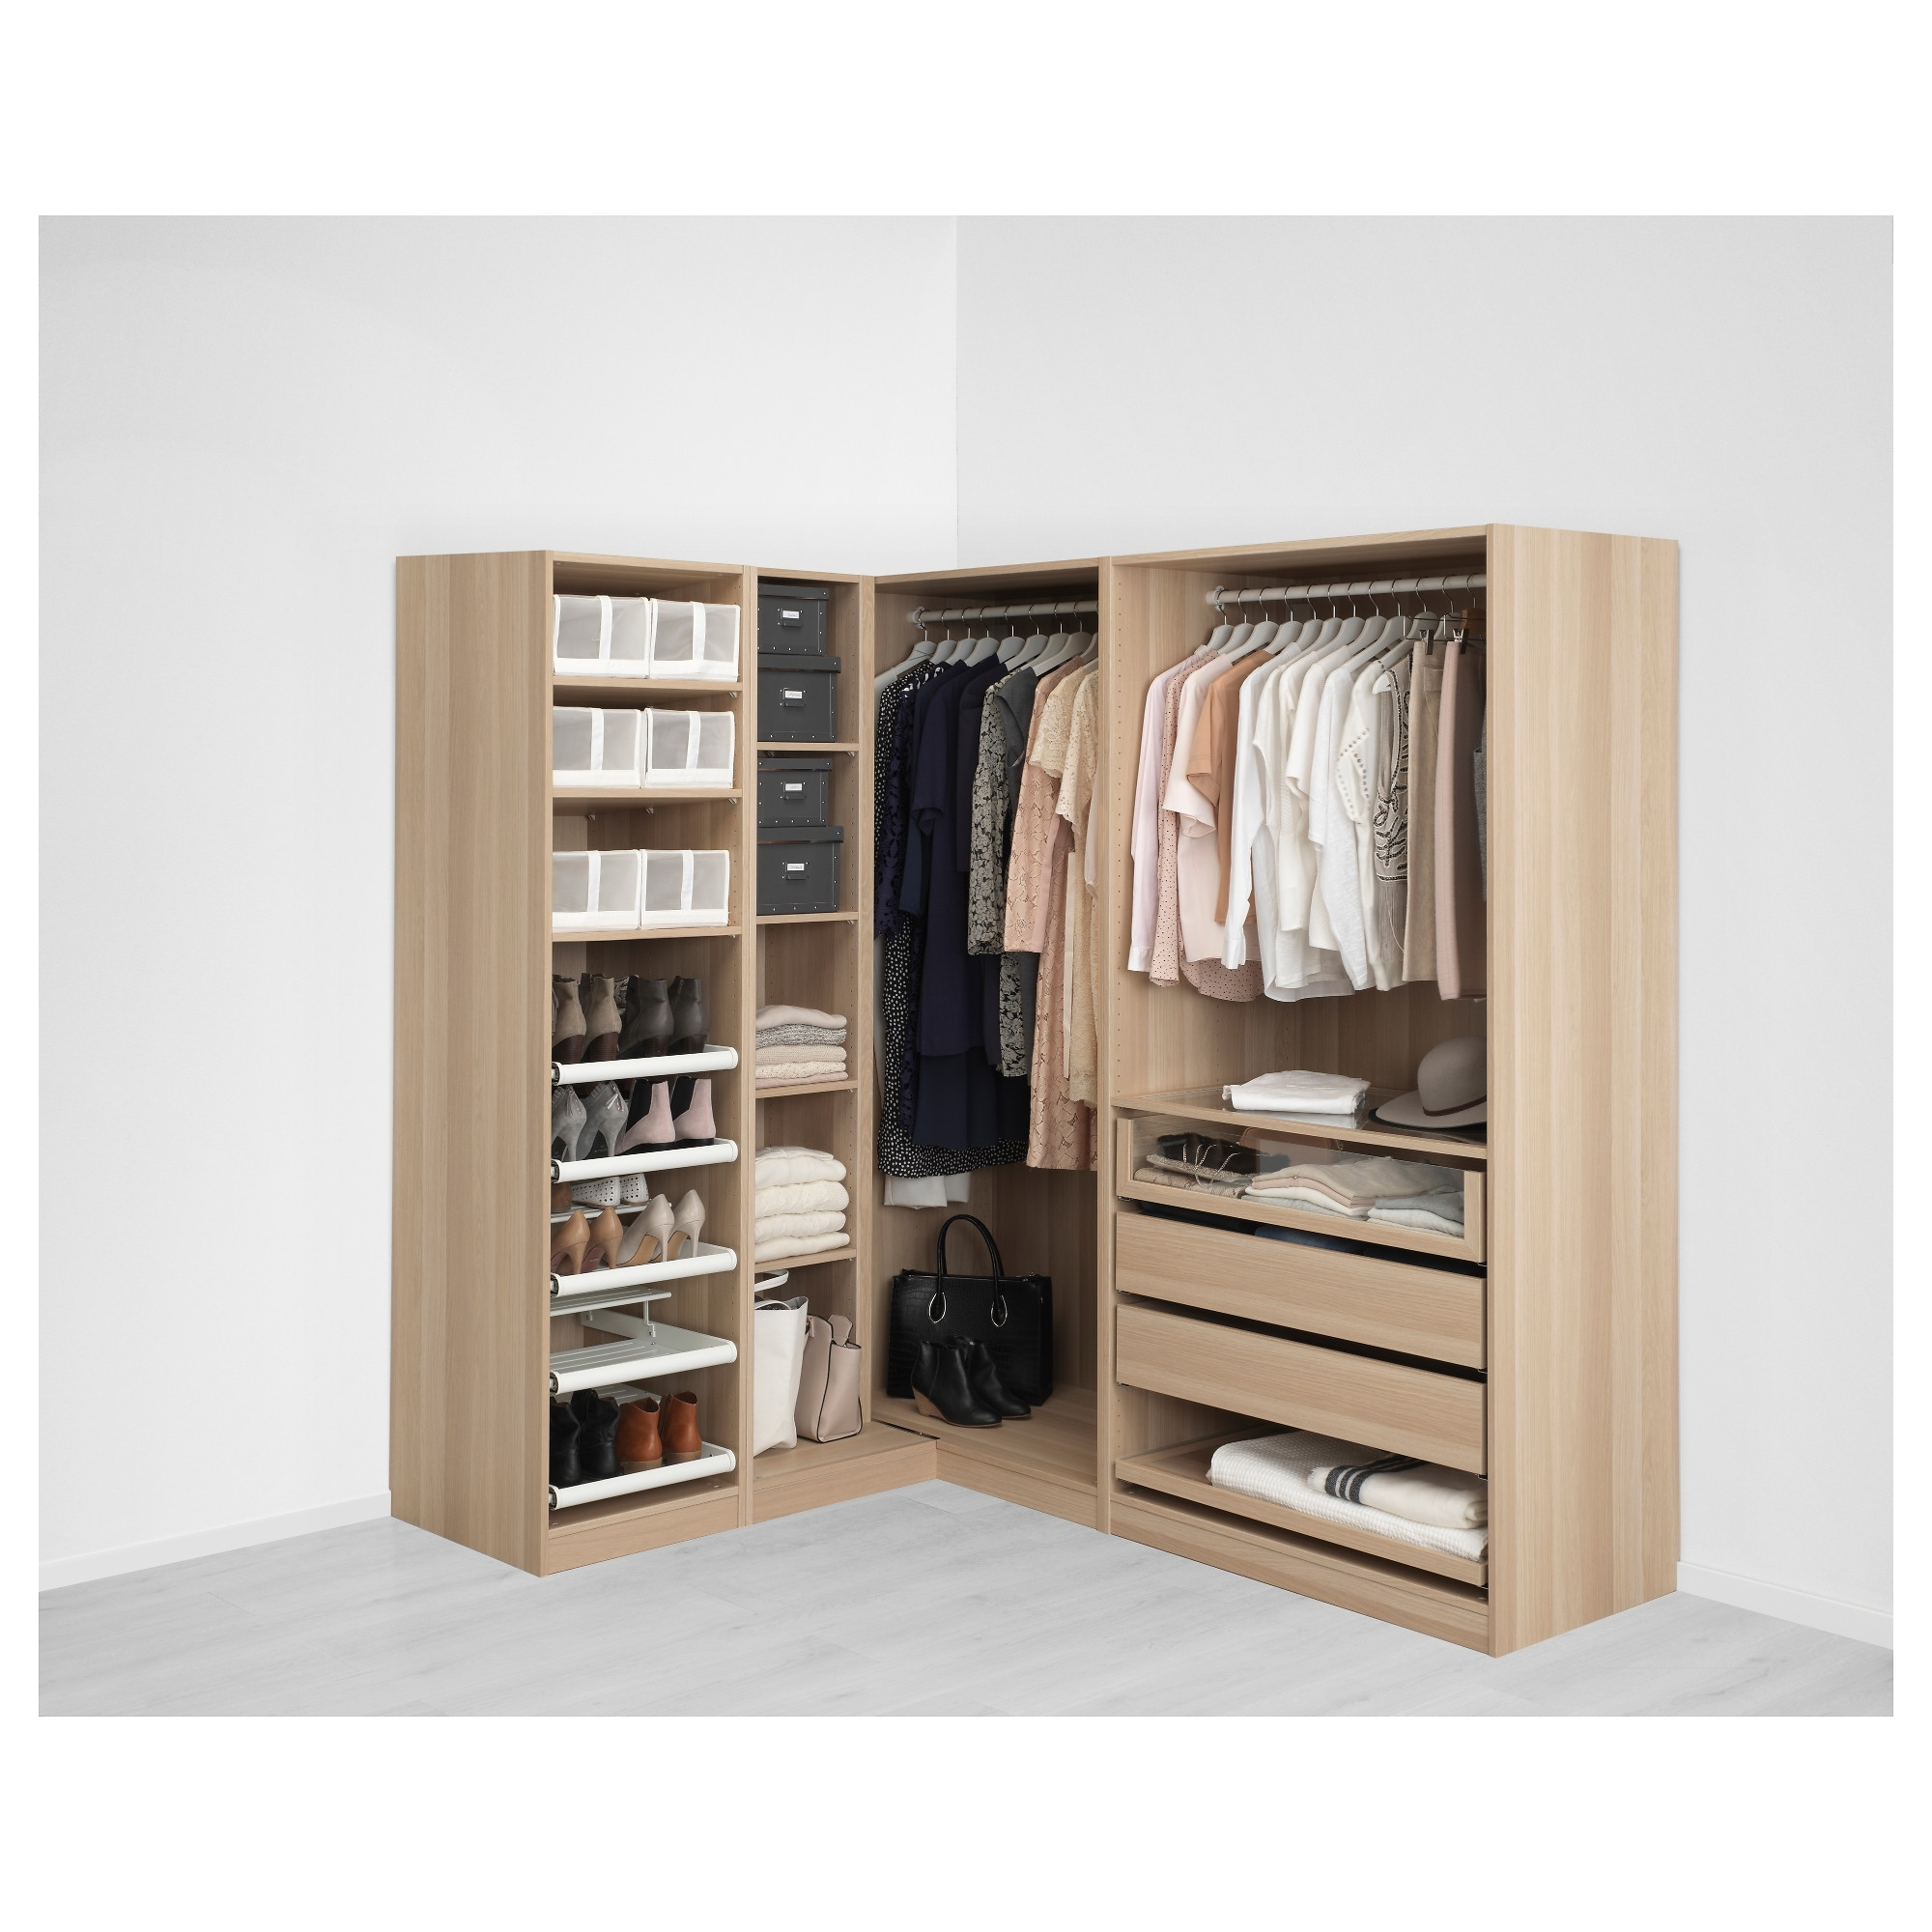 Preferred Corner Wardrobes Closet Ikea Regarding Pax Corner Wardrobe White  Stained Oak Effect/nexus Vikedal